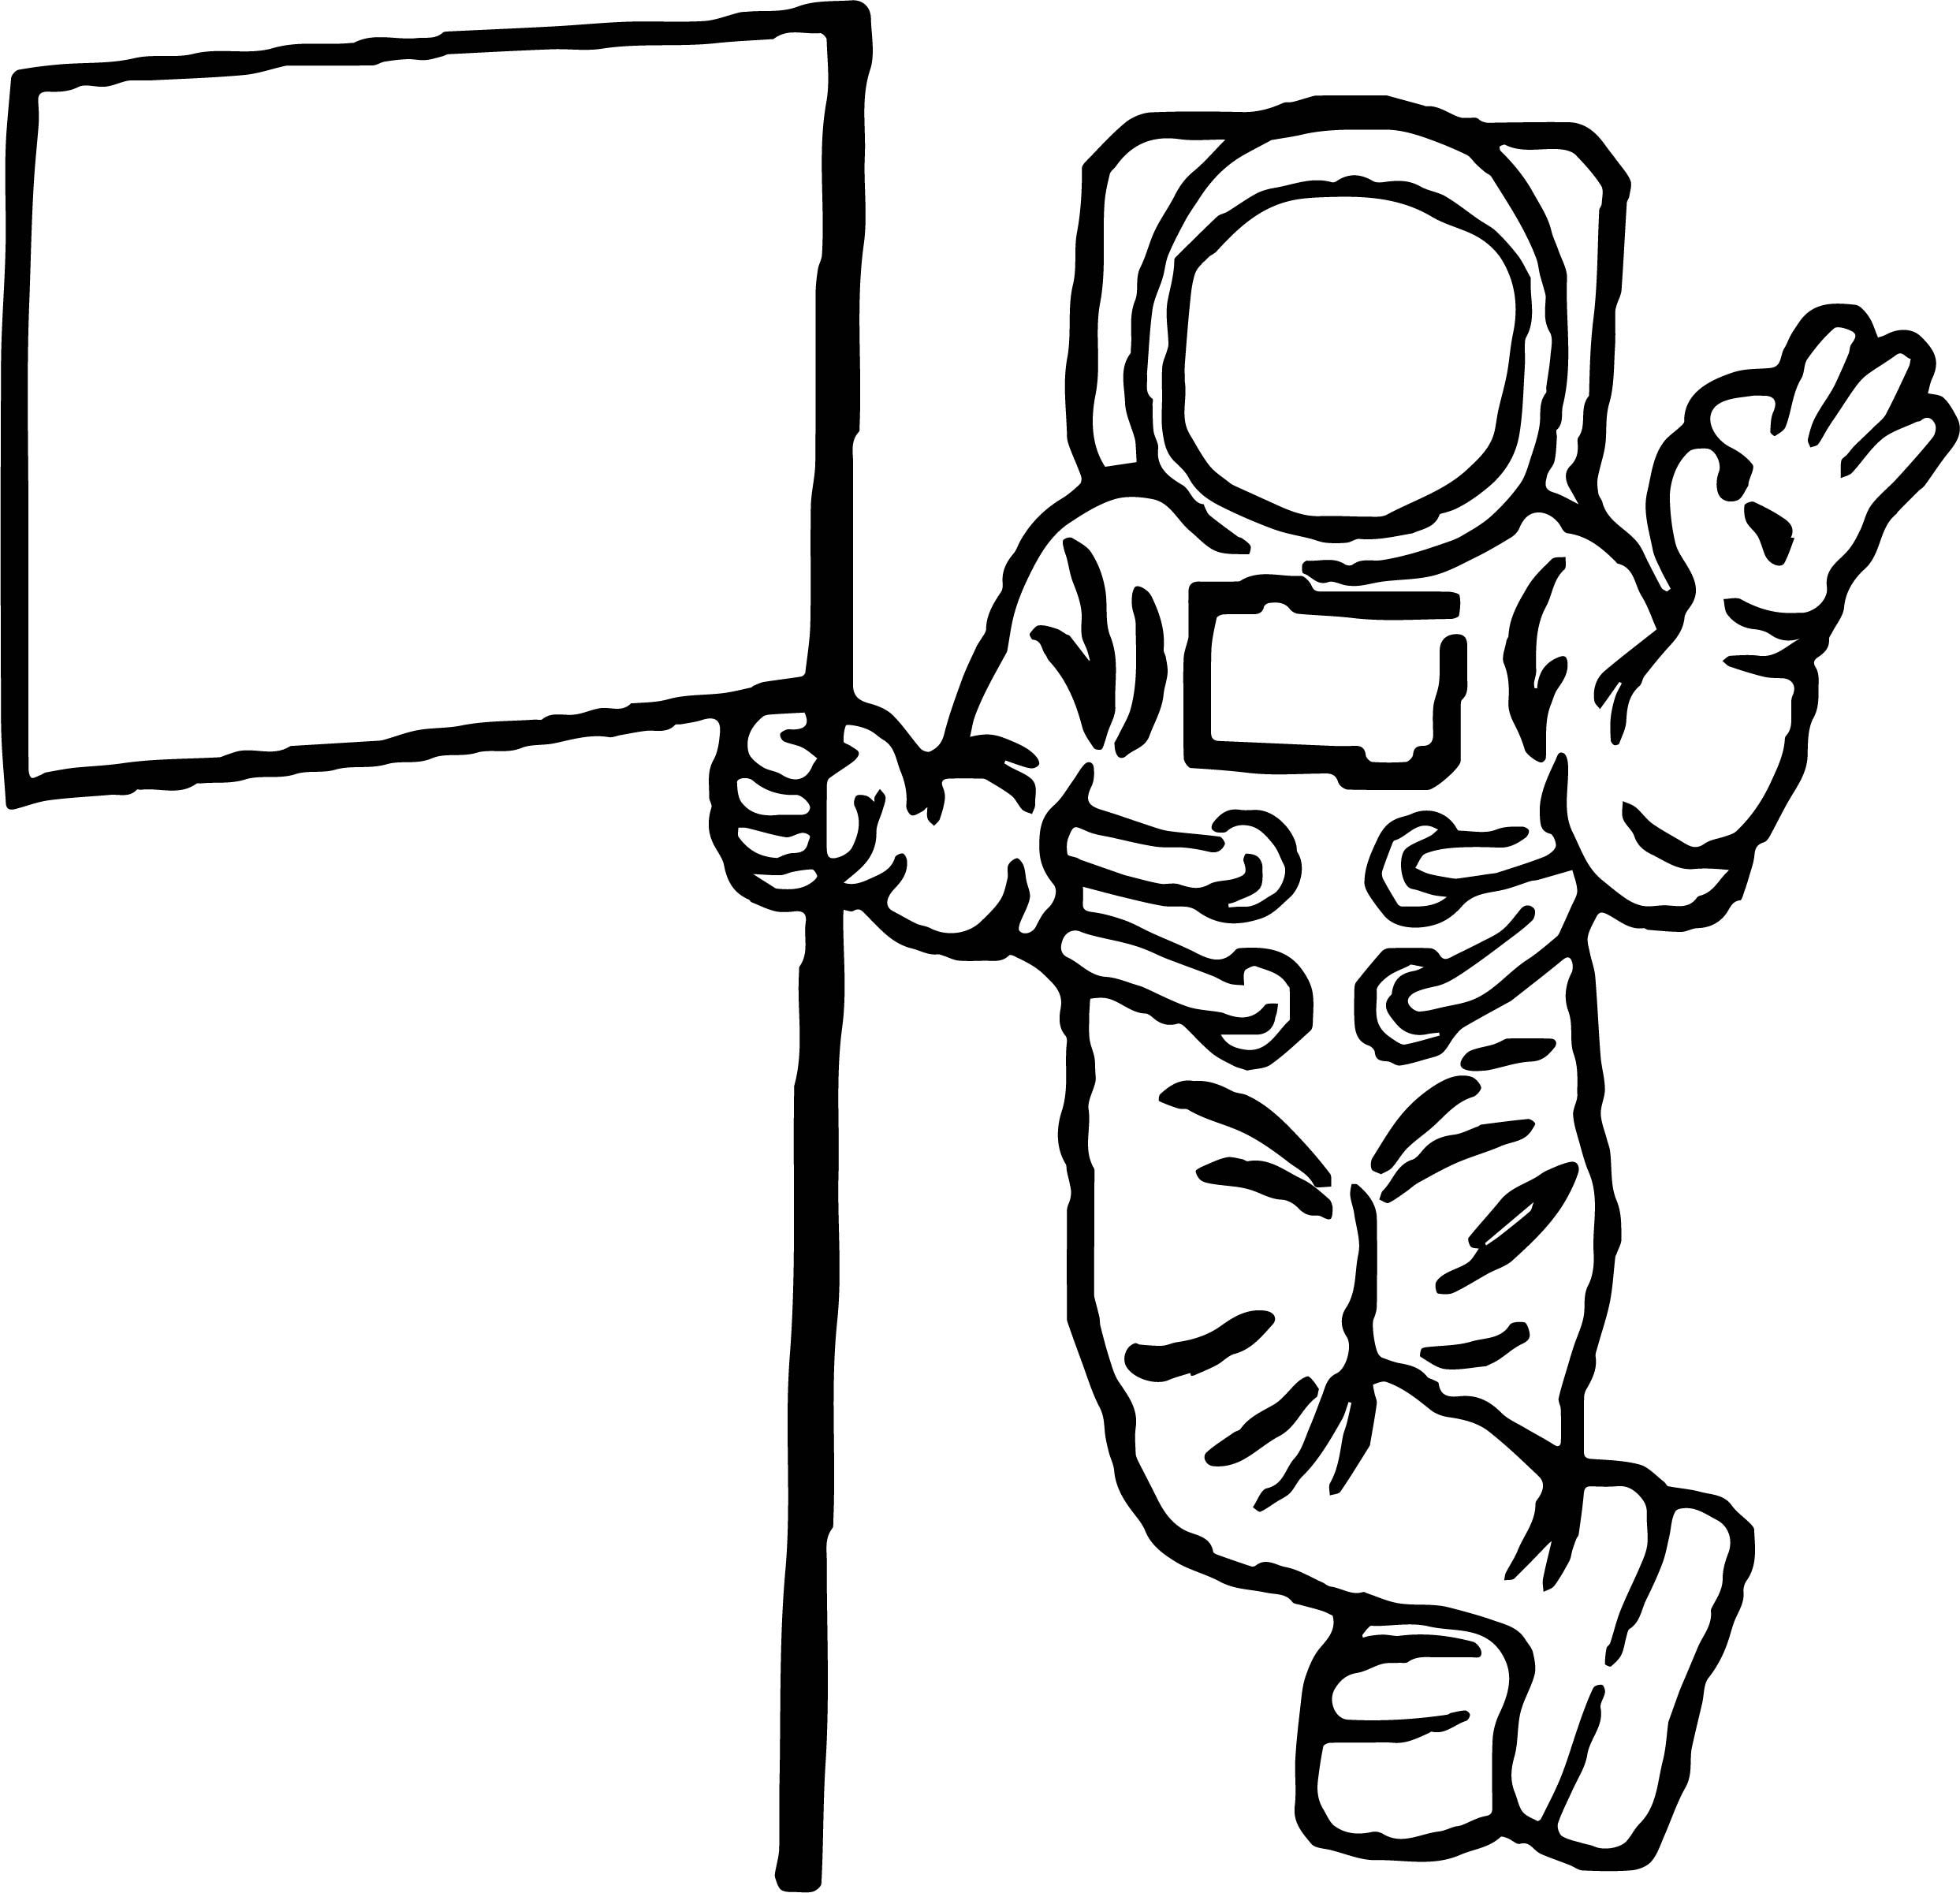 Nice Astronaut Flag Coloring Pages Astronaut Zeichnung